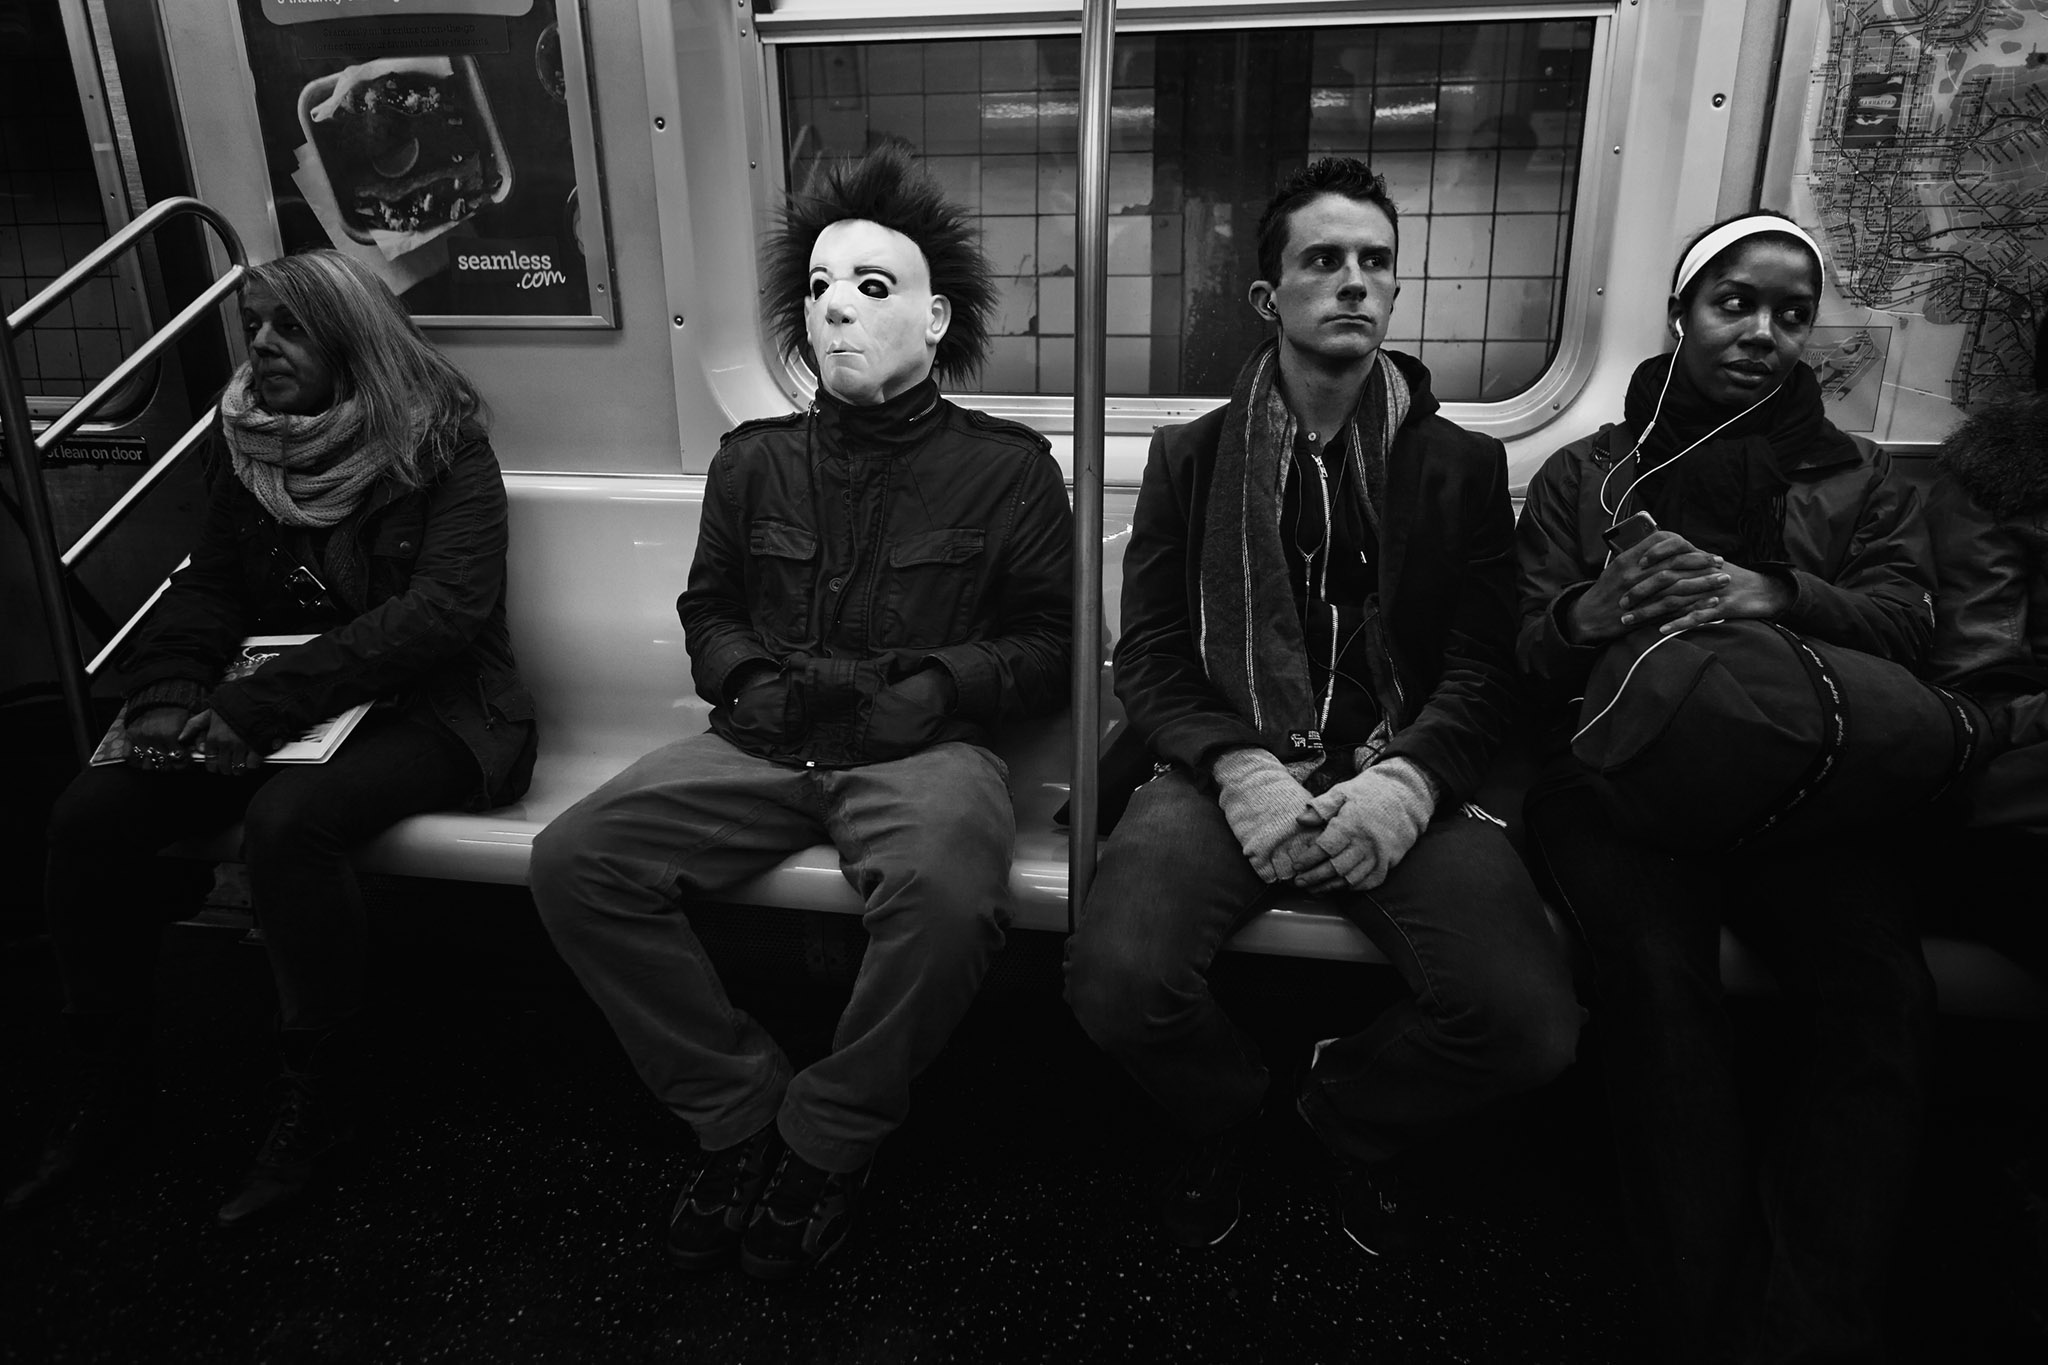 passengers_riding_subway_nyc_halloween